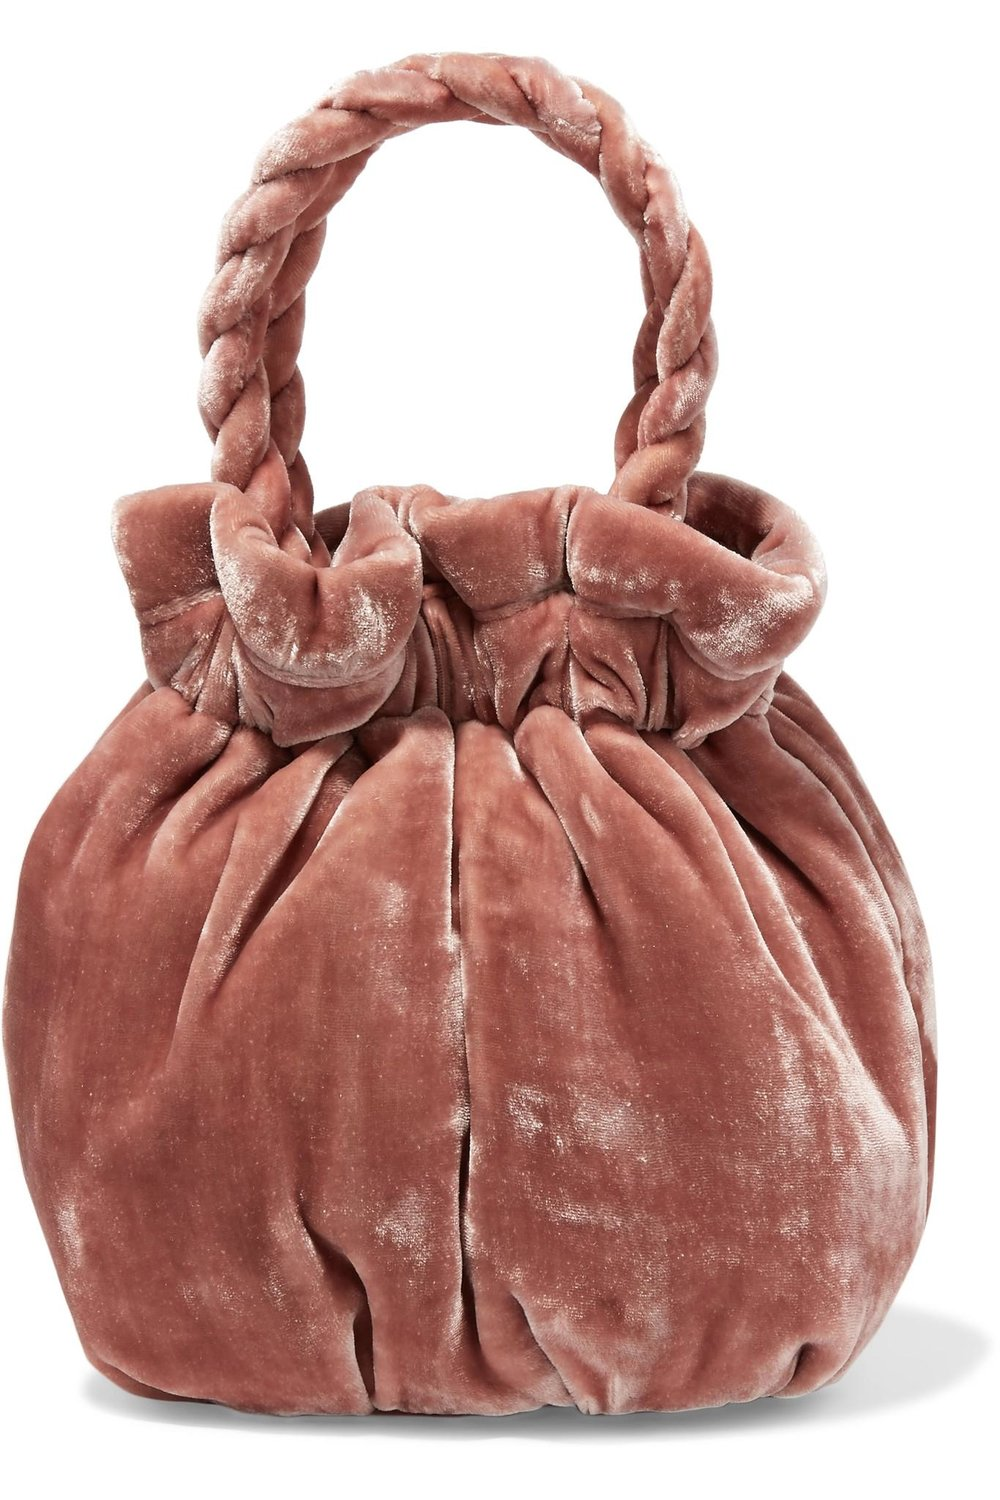 staud-baby-pink-Grace-Crushed-velvet-Tote.jpeg